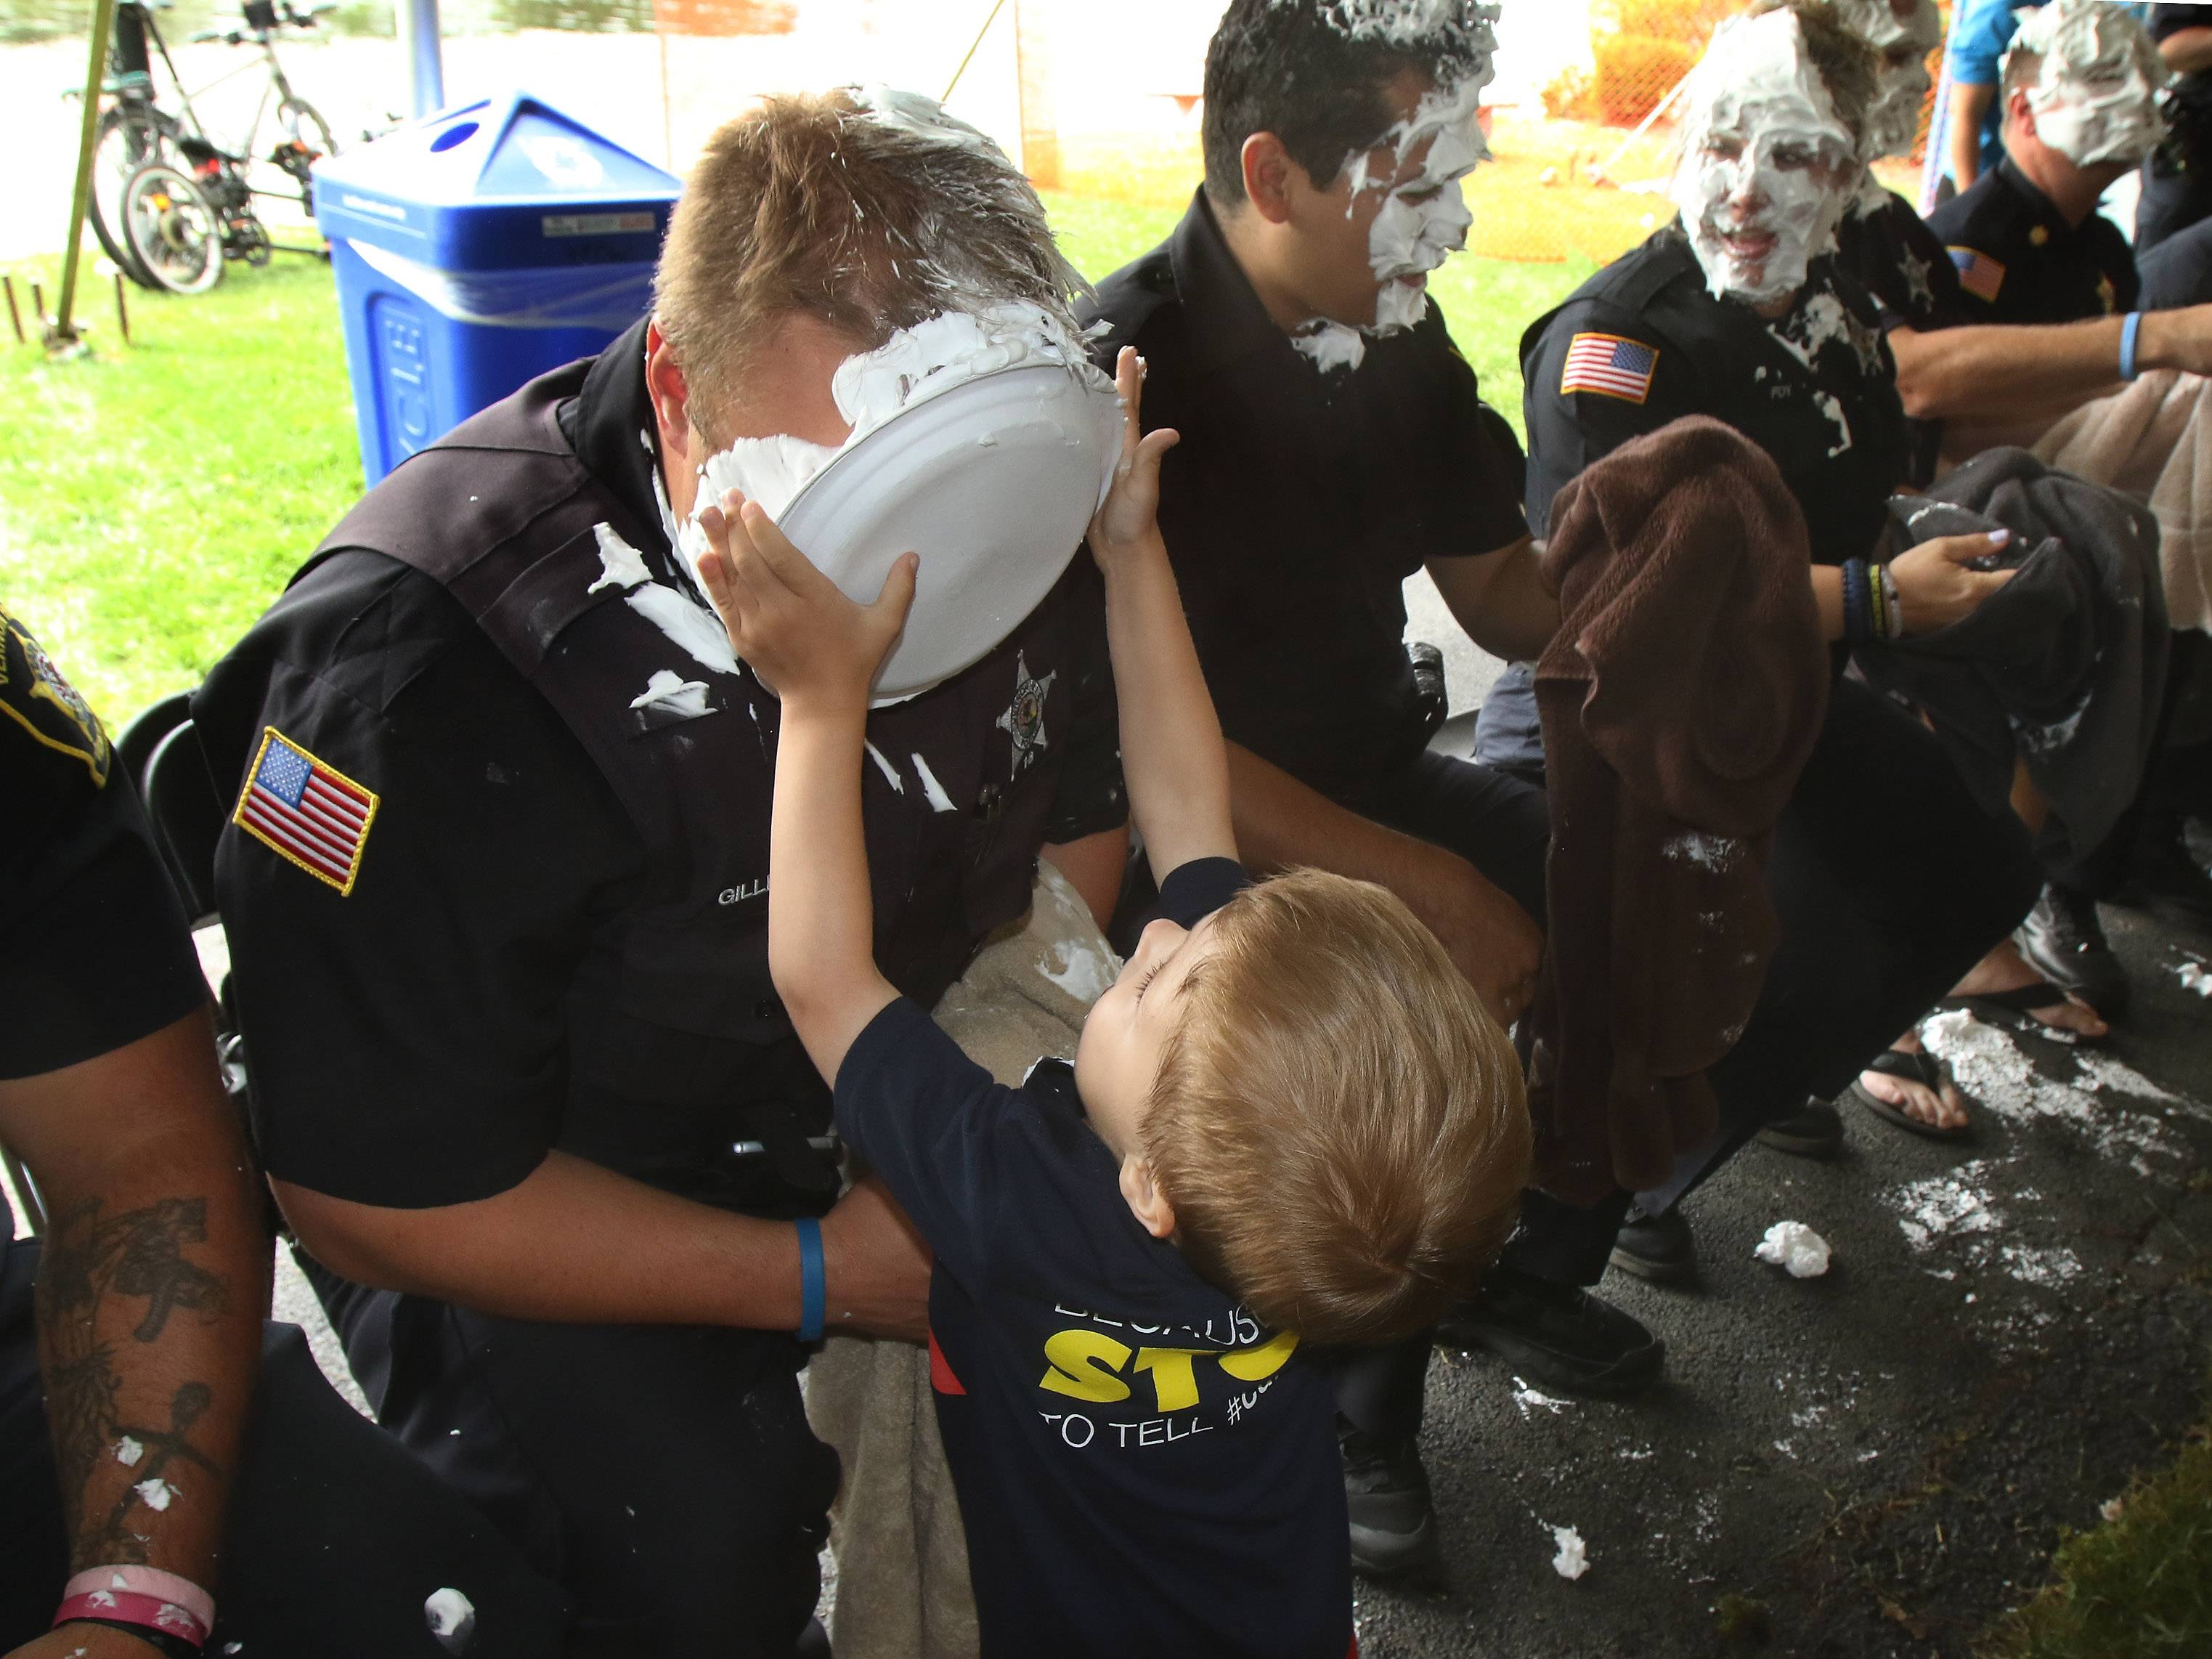 Vernon Hills Det. Andrew Gillespie receives a pie in the face from his son, Joshua, 3, during the last day of the Vernon Hills' Summer Celebration on Sunday at Century Park.